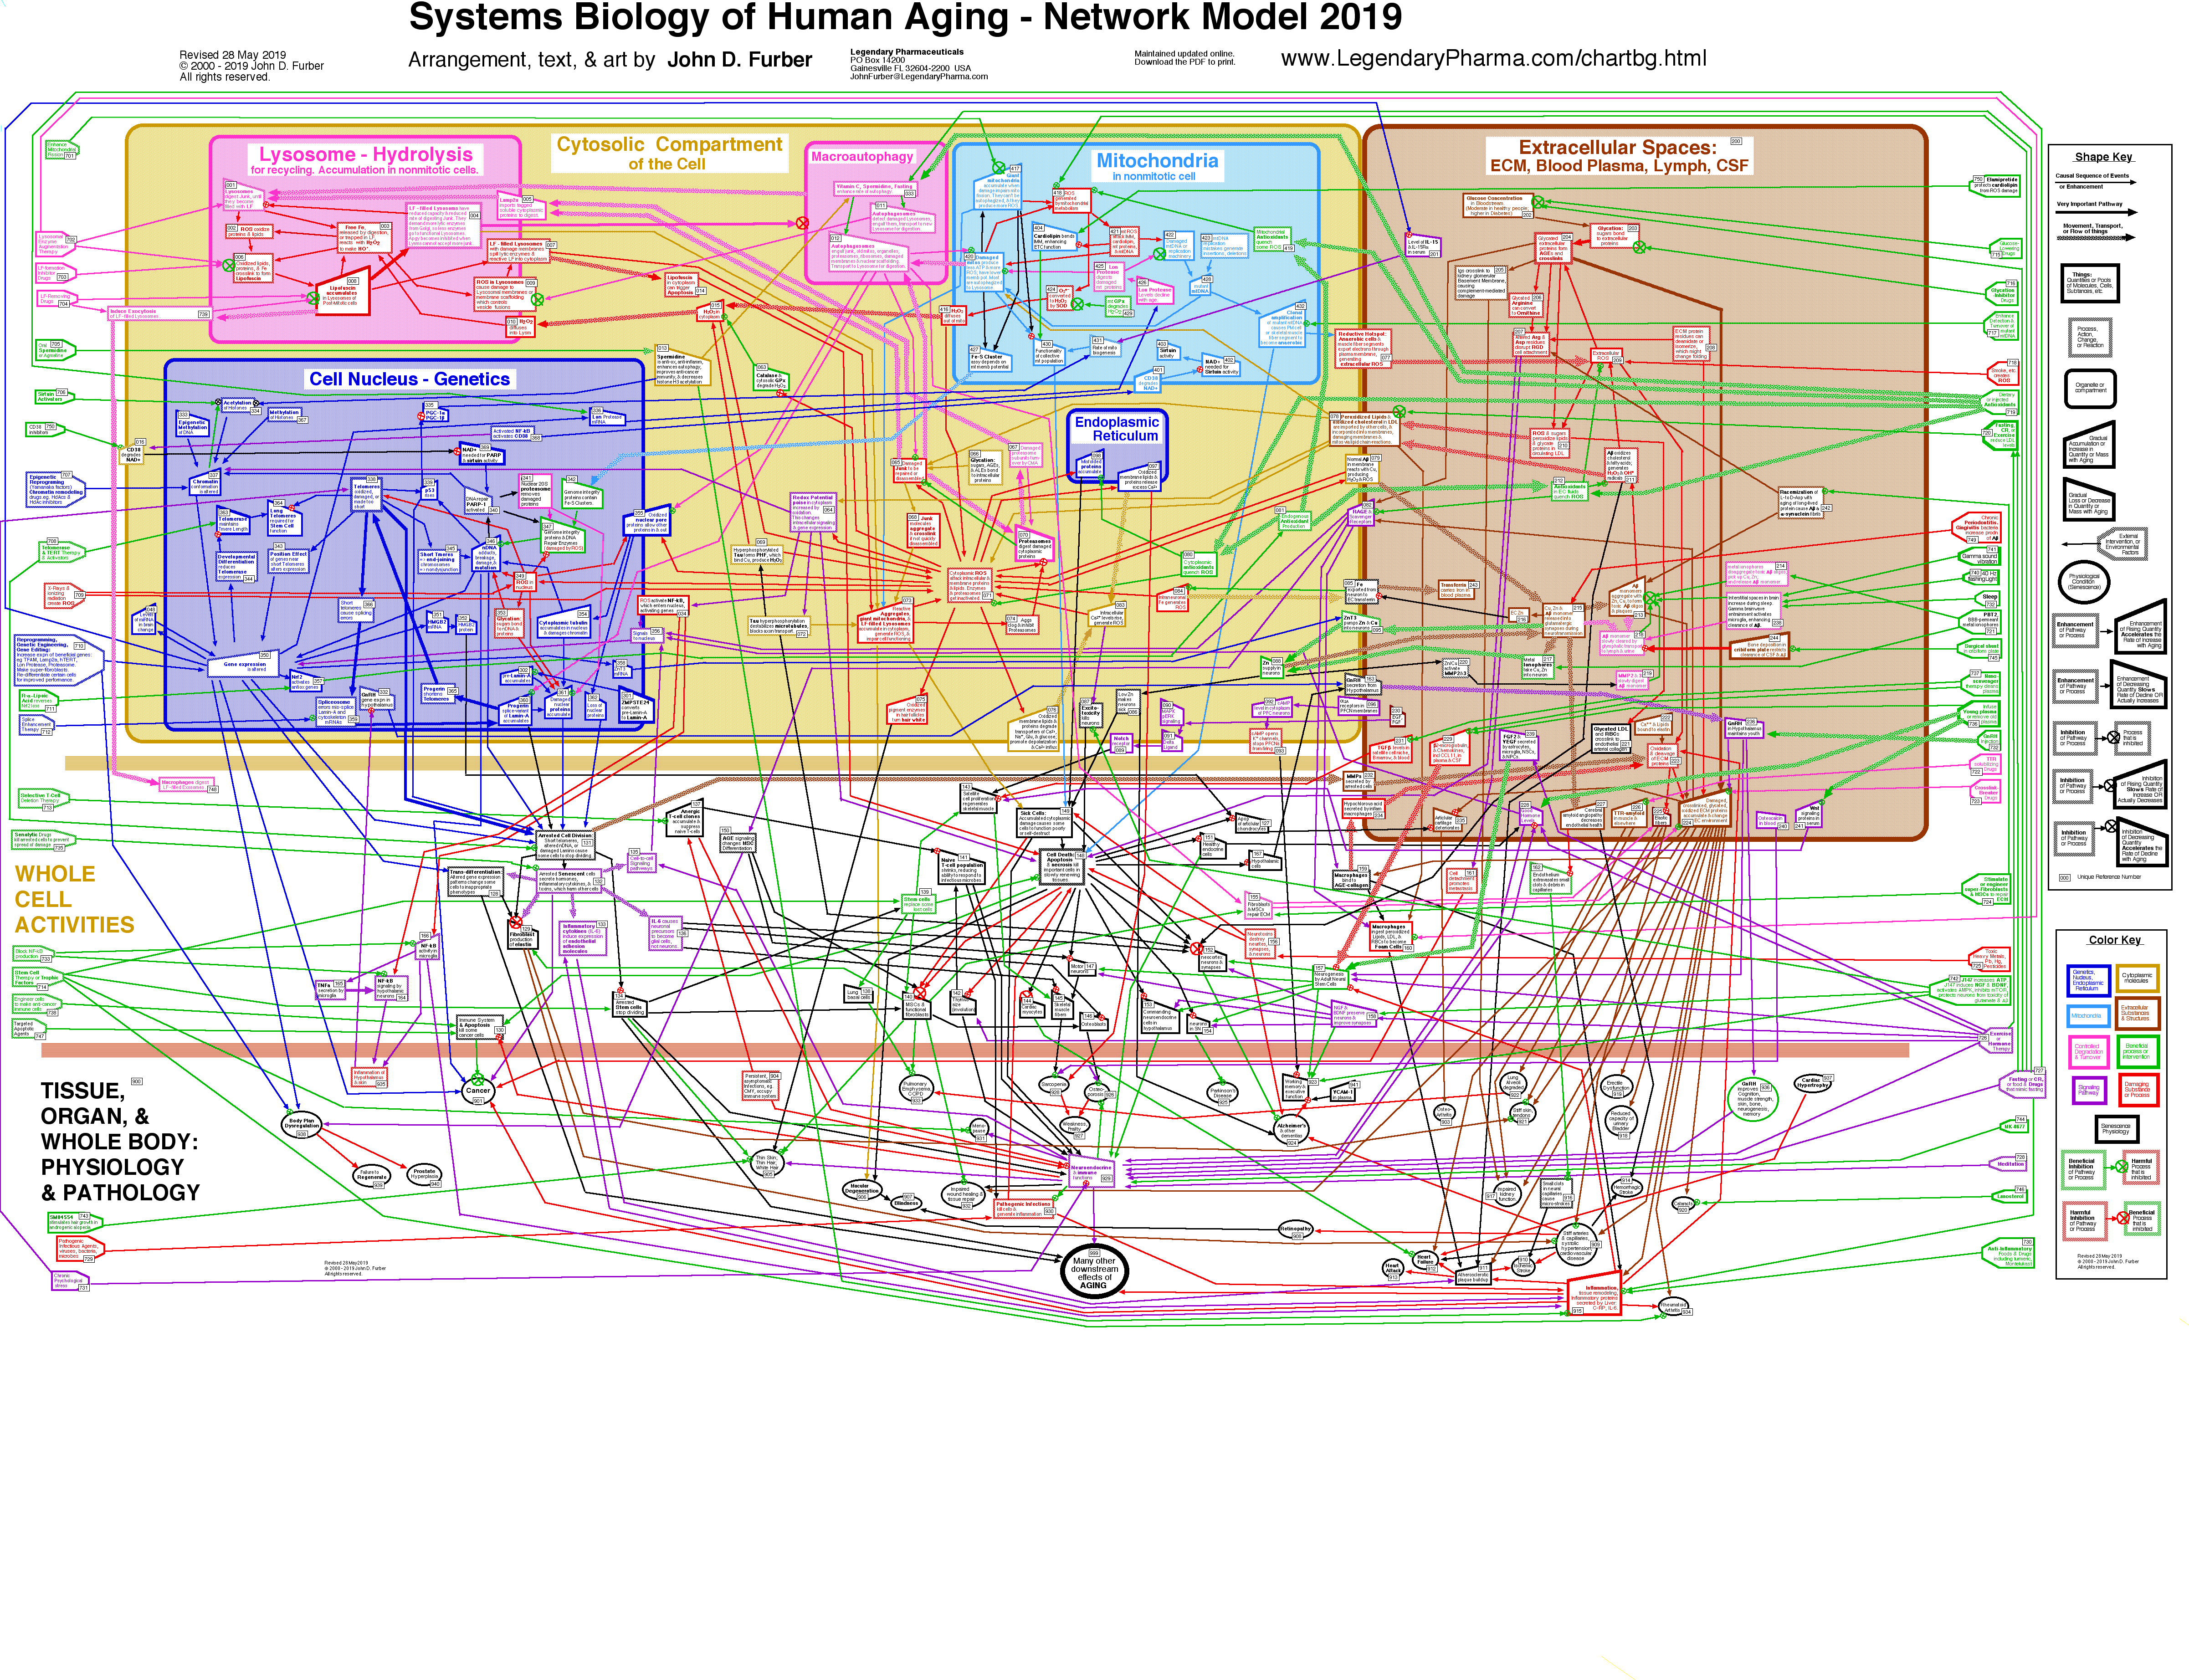 Large Network Diagram. PNG File. If your iPhone or iPad is unable to display the PNG, then go down the page and load the PDF file furberchart.pdf